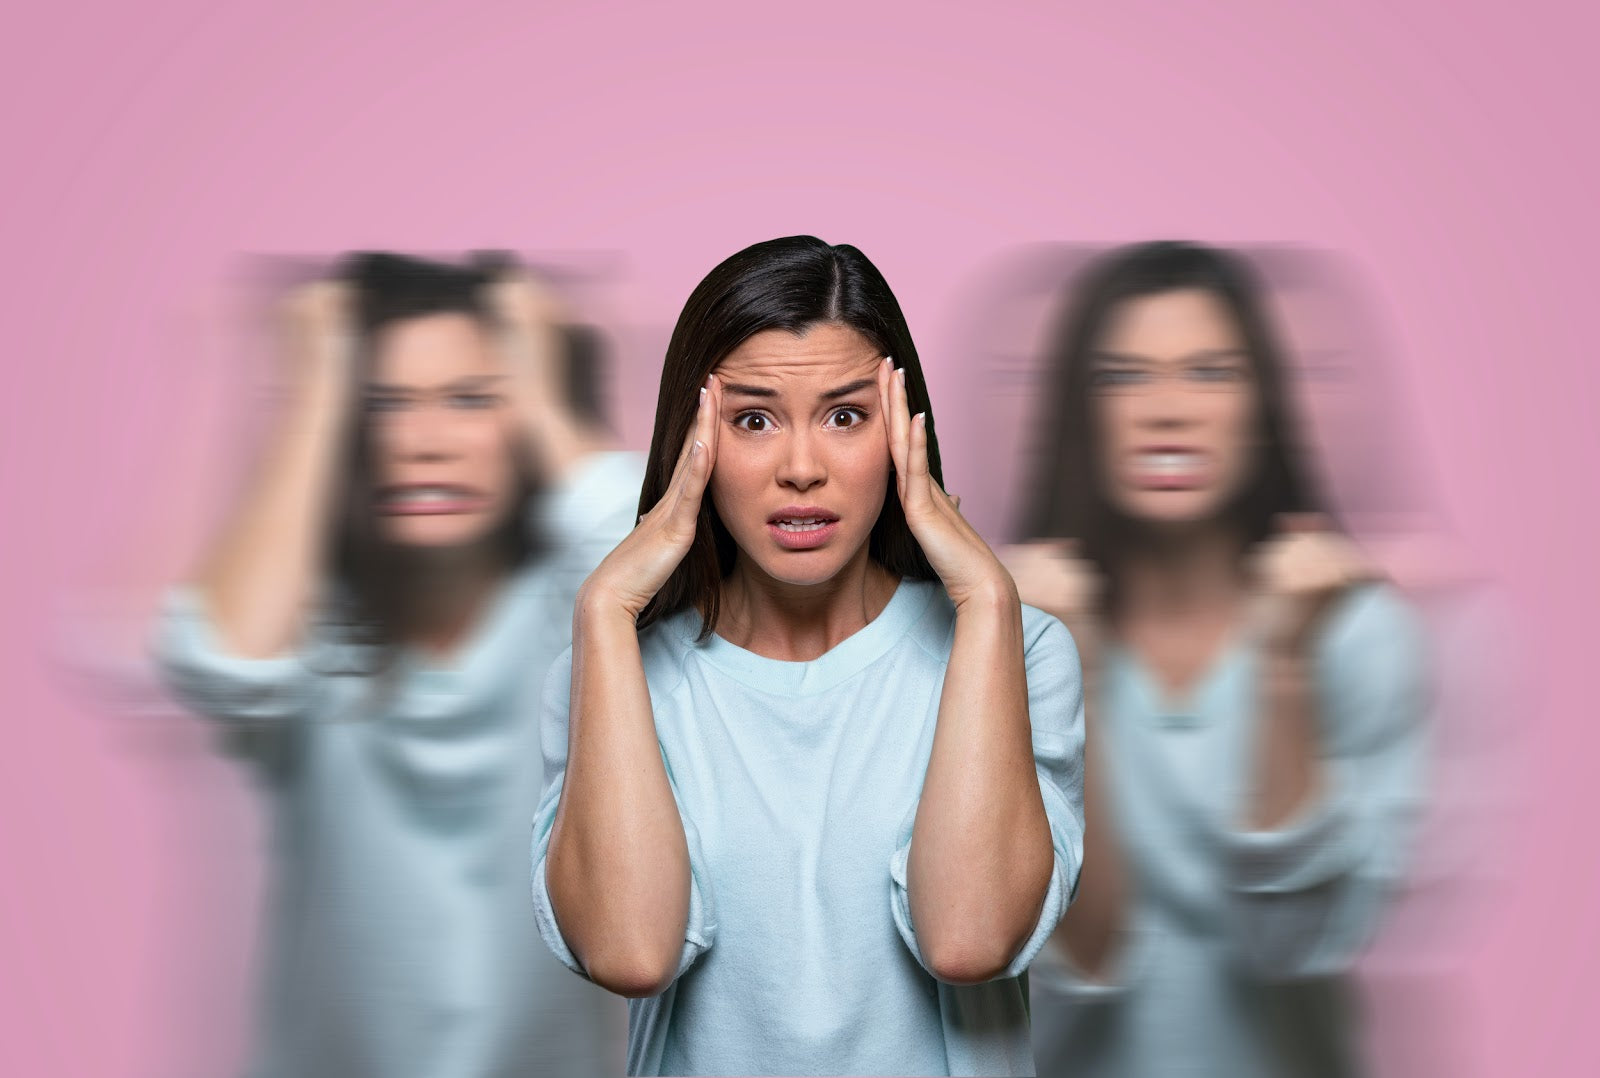 Low Progesterone Symptoms: Woman who looks stressed with hands at her temples